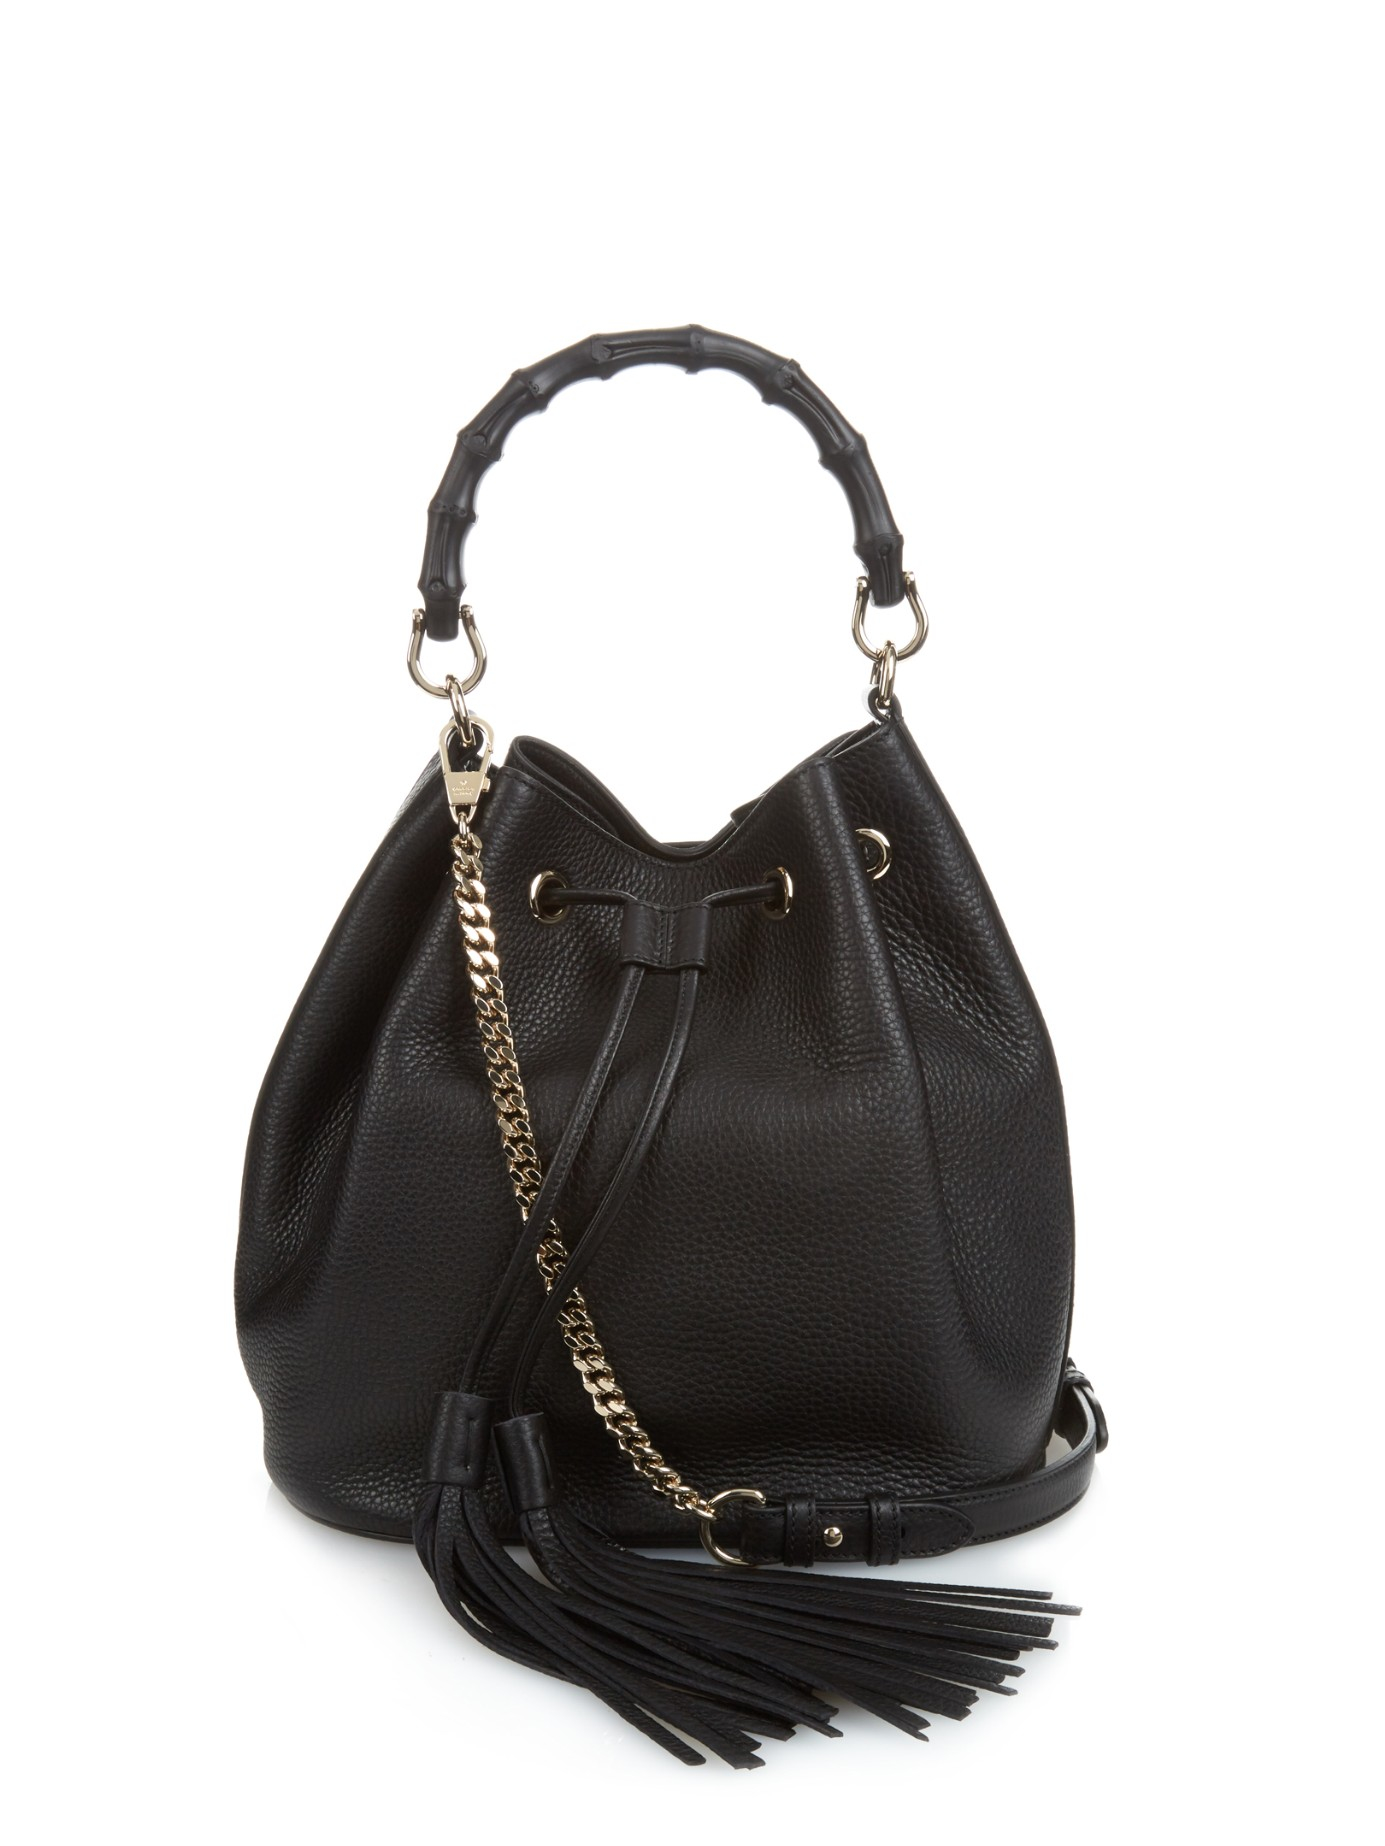 Gucci Bamboo Leather Bucket Bag In Black Lyst